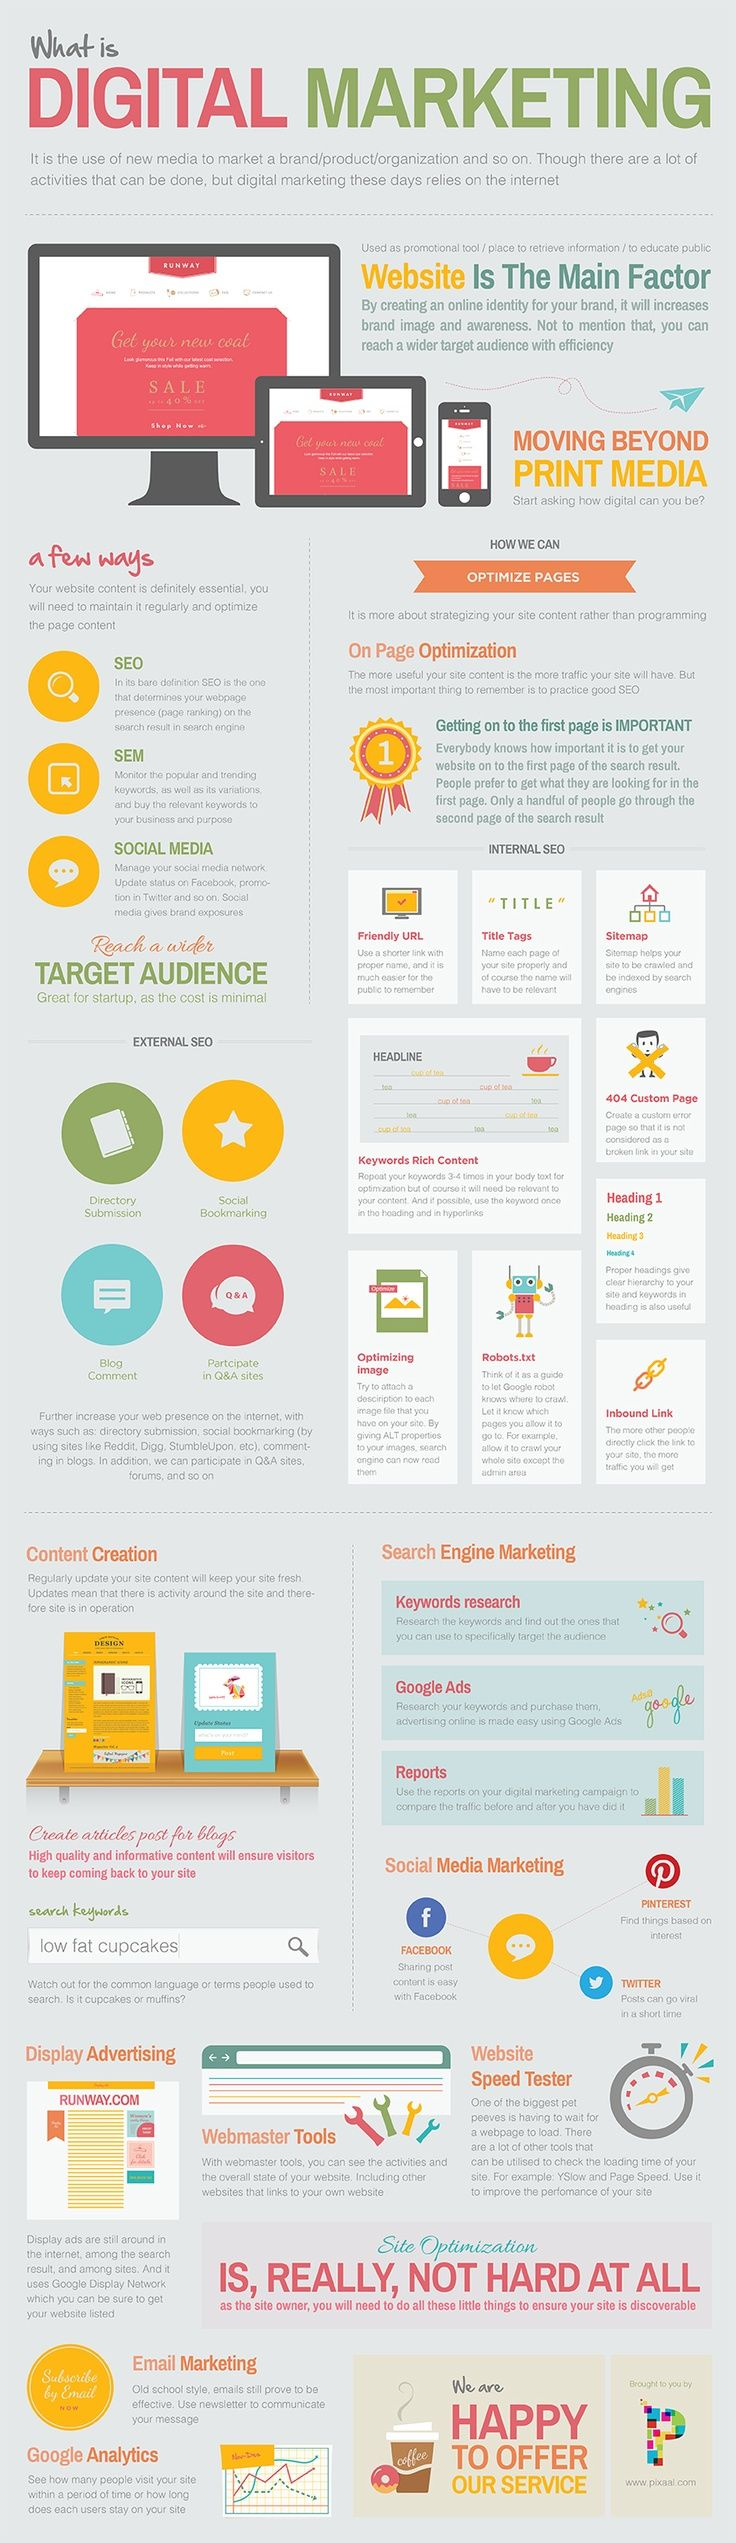 57 best Data and the Online Realm images on Pinterest | Digital ...